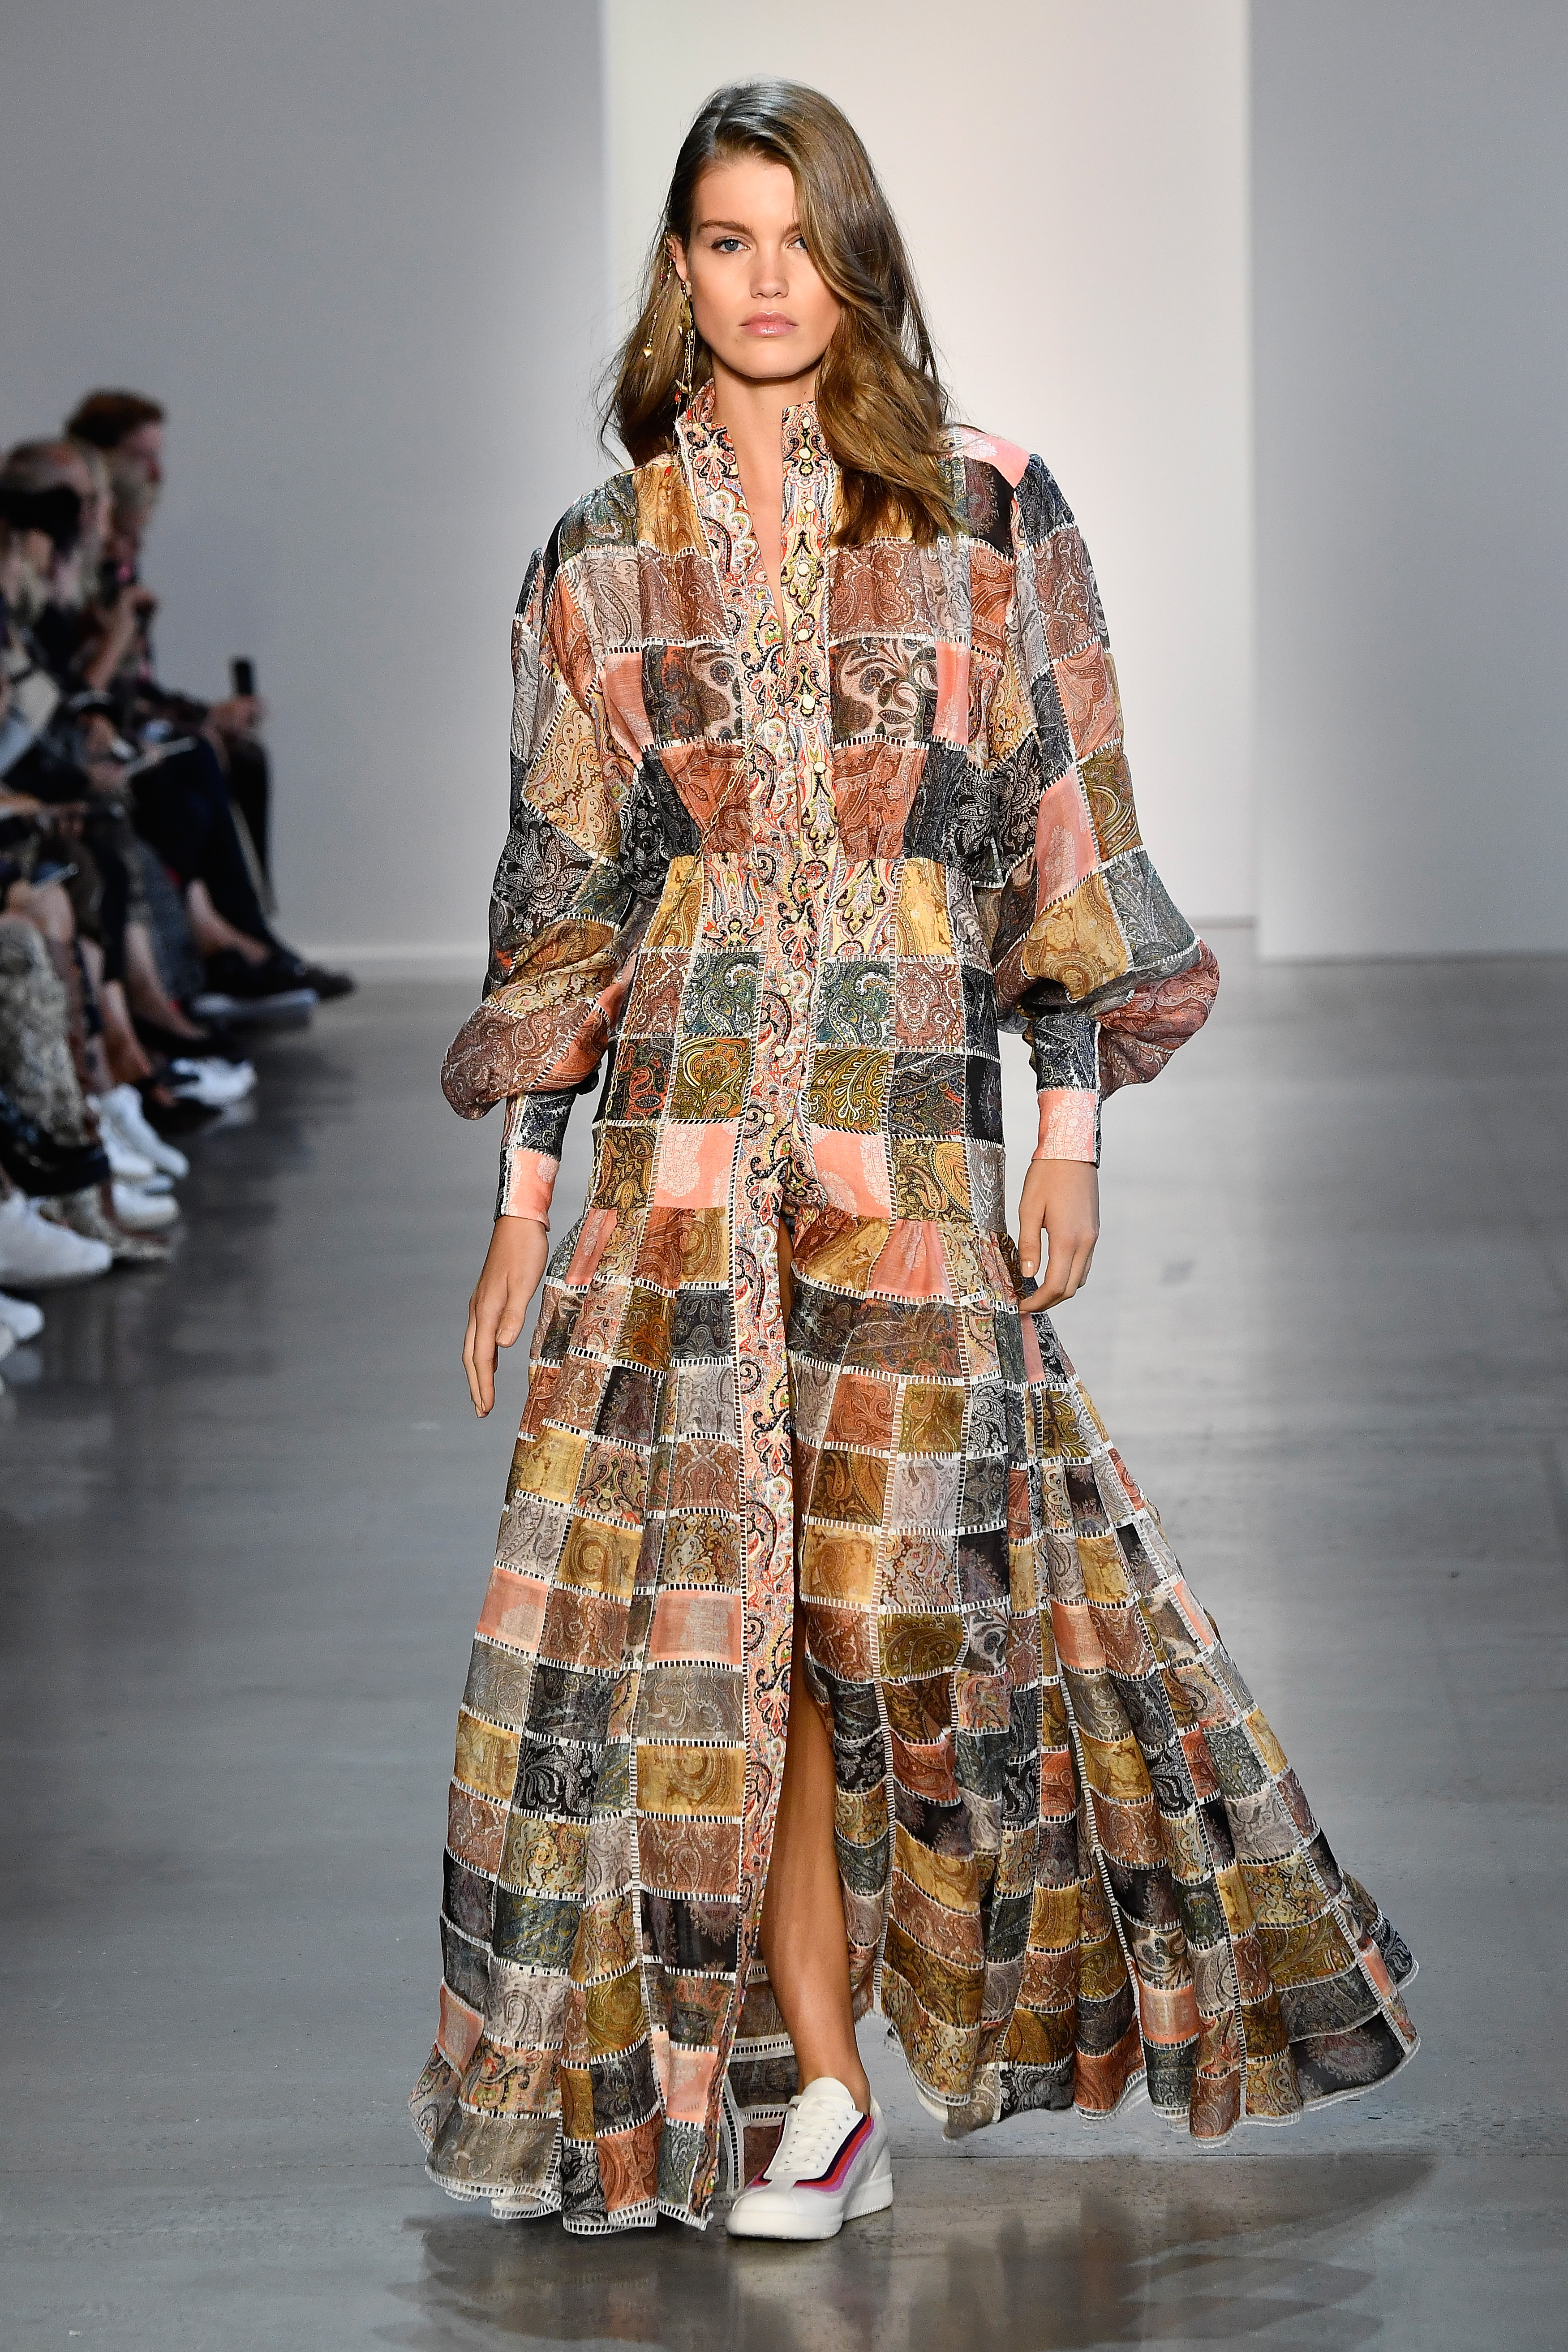 NEW YORK, NY - SEPTEMBER 10:  A model walks the runway for Zimmermann during New York Fashion Week: The Shows at Gallery I at Spring Studios on September 10, 2018 in New York City.  (Photo by Frazer Harrison/Getty Images for NYFW: The Shows)